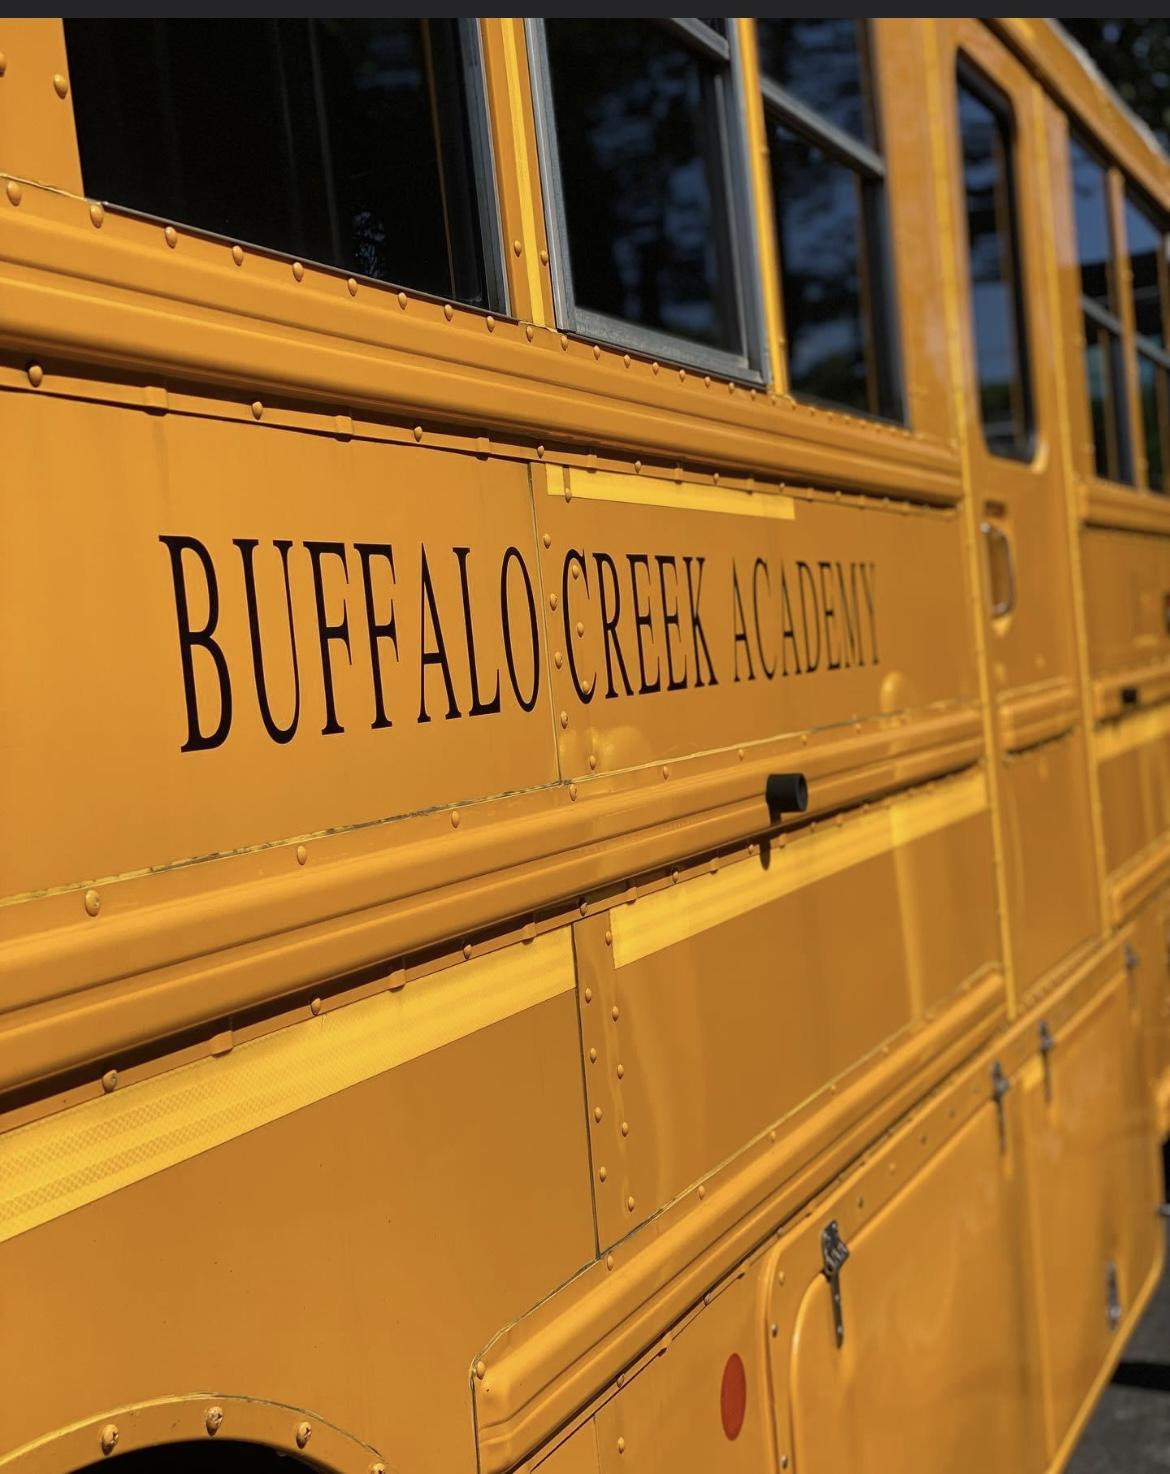 Picture of Buffalo Creek Academy Bus